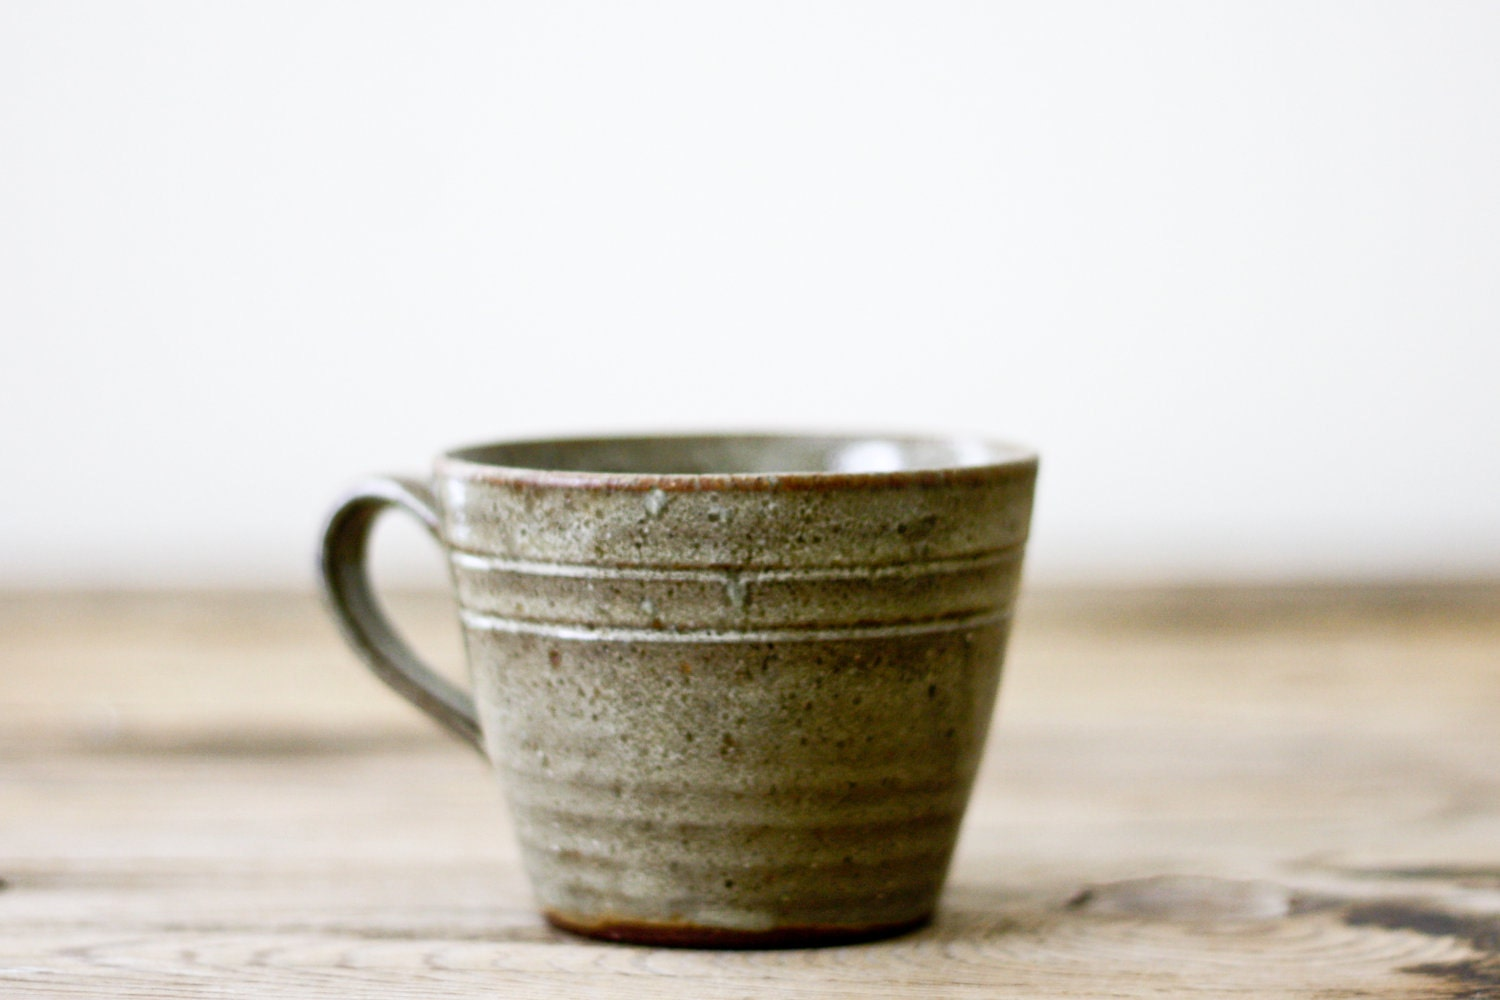 Vintage Pottery Mug from Jugtown Pottery of Seagrove, NC - PineandMain